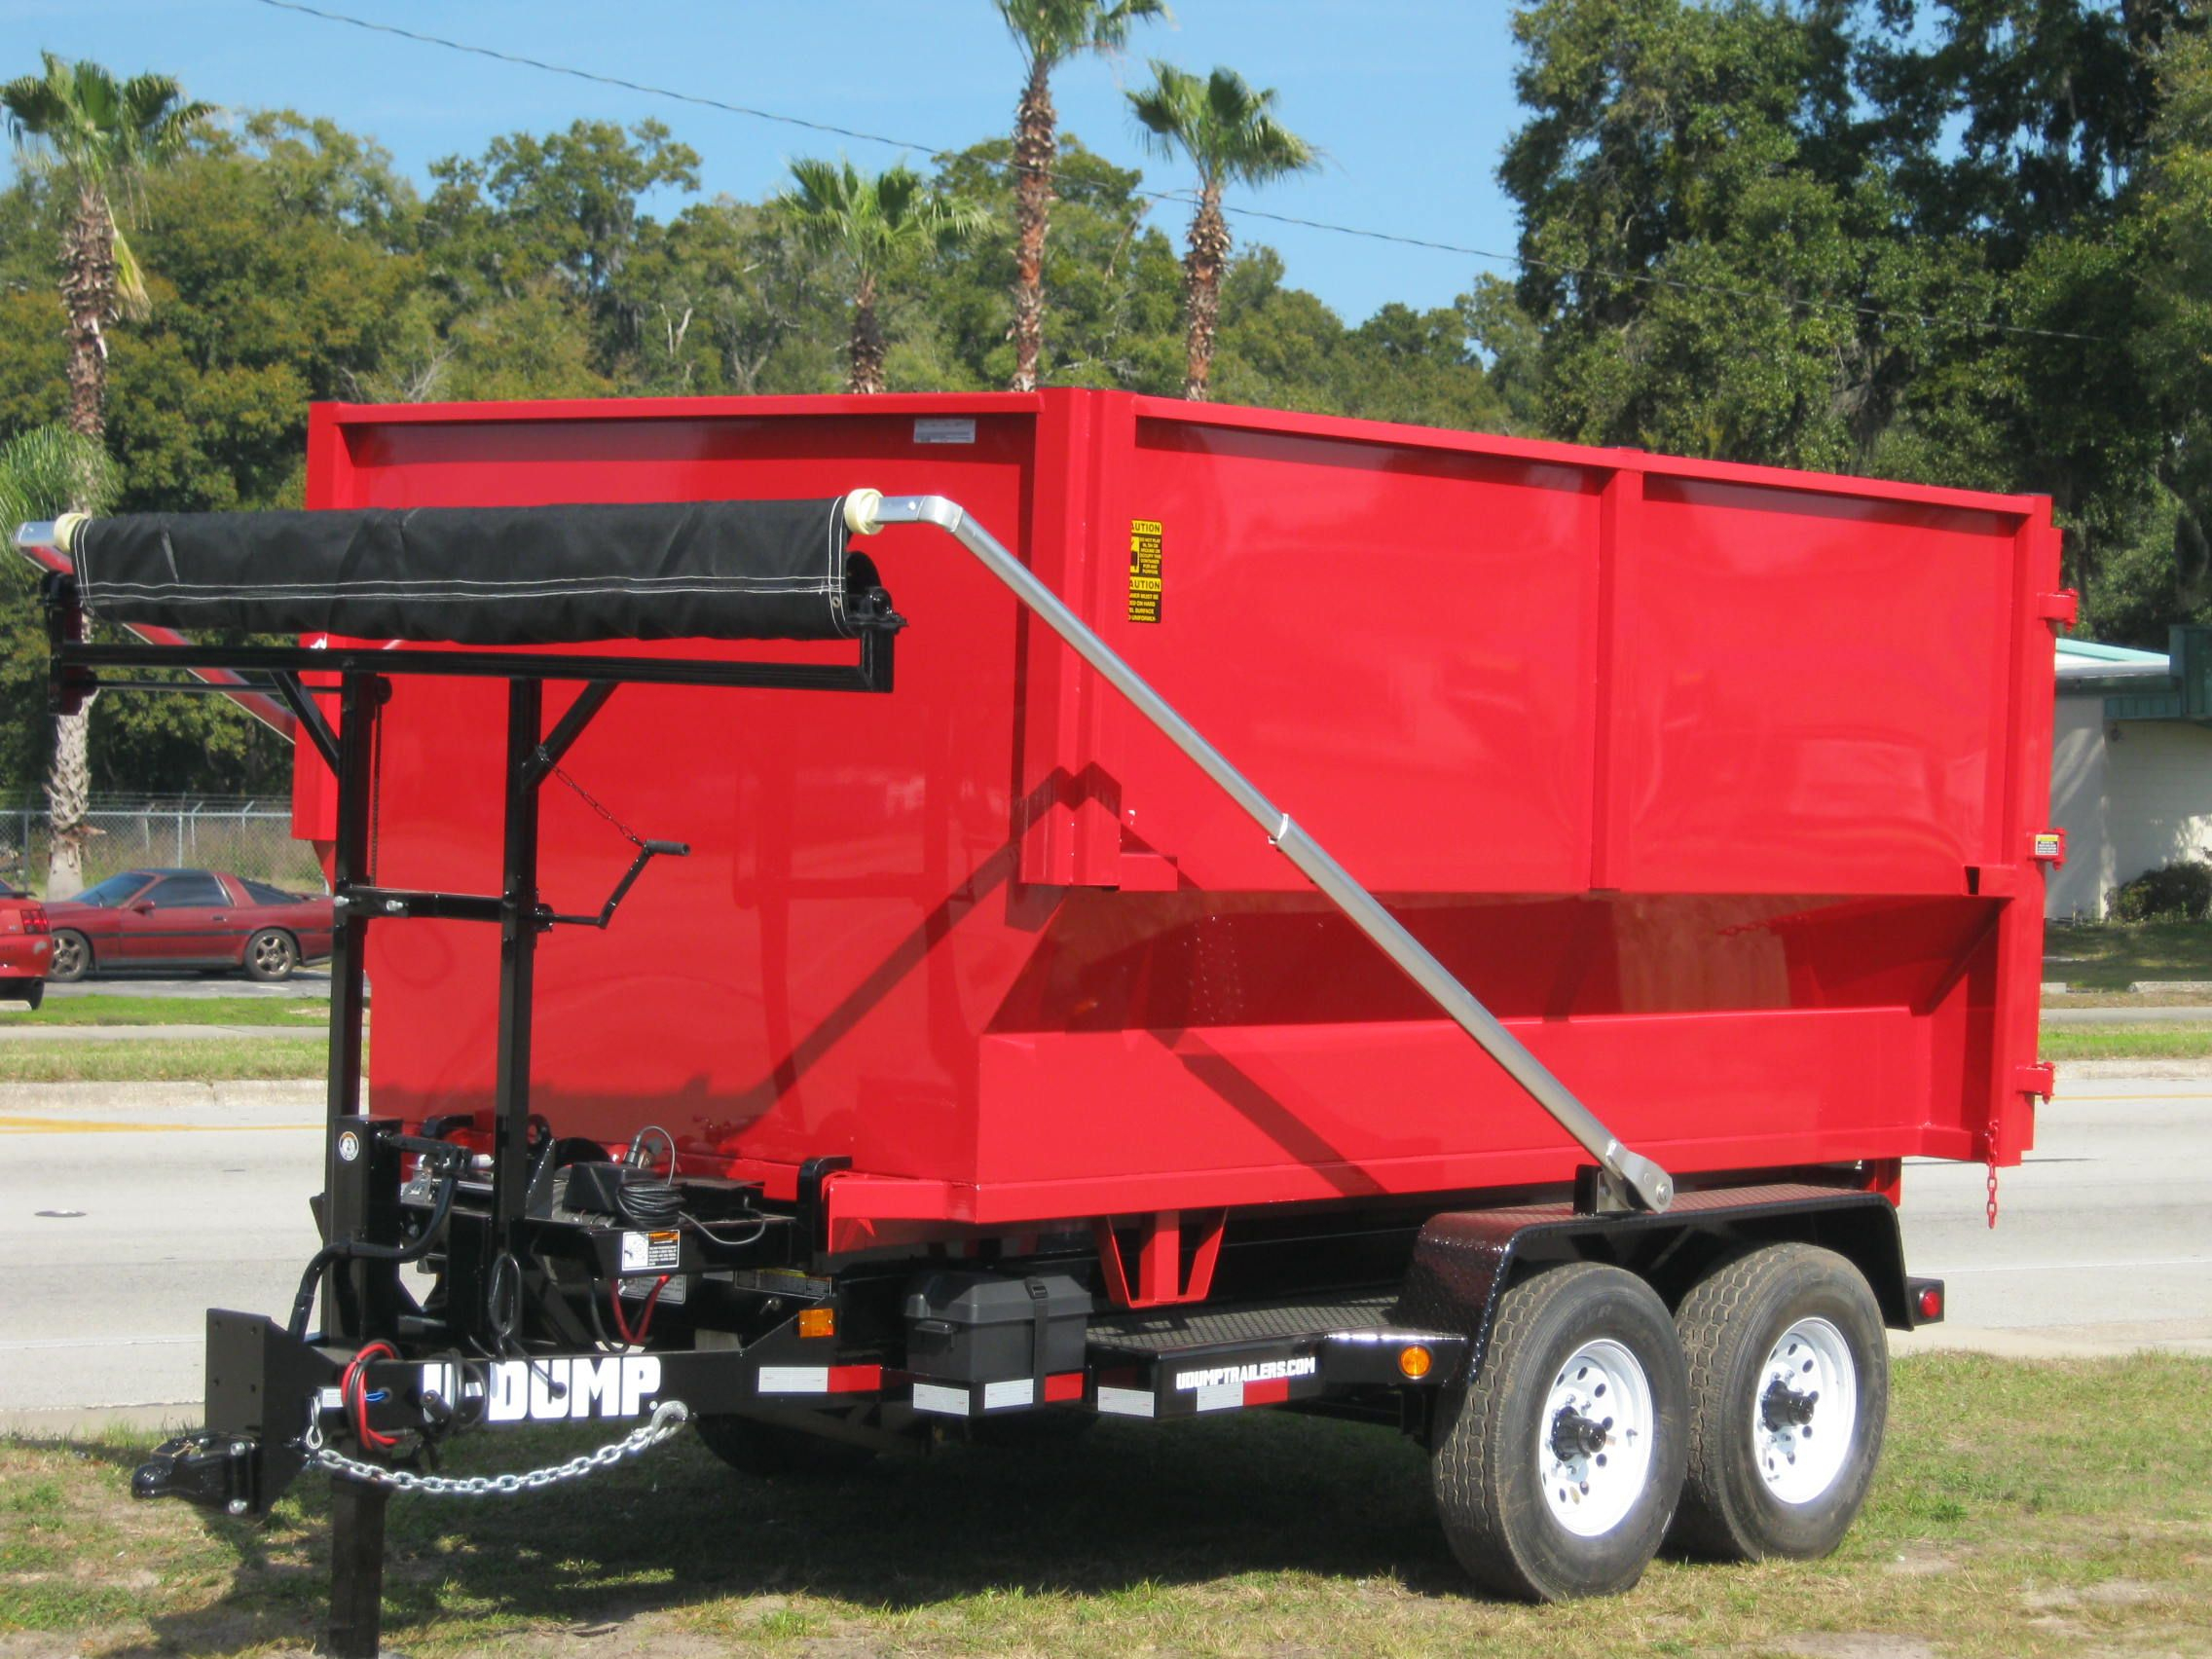 Roll Off Dump Trailers Wiring Diagram For Texas Pride | Manual E-Books - Texas Pride Trailer Wiring Diagram